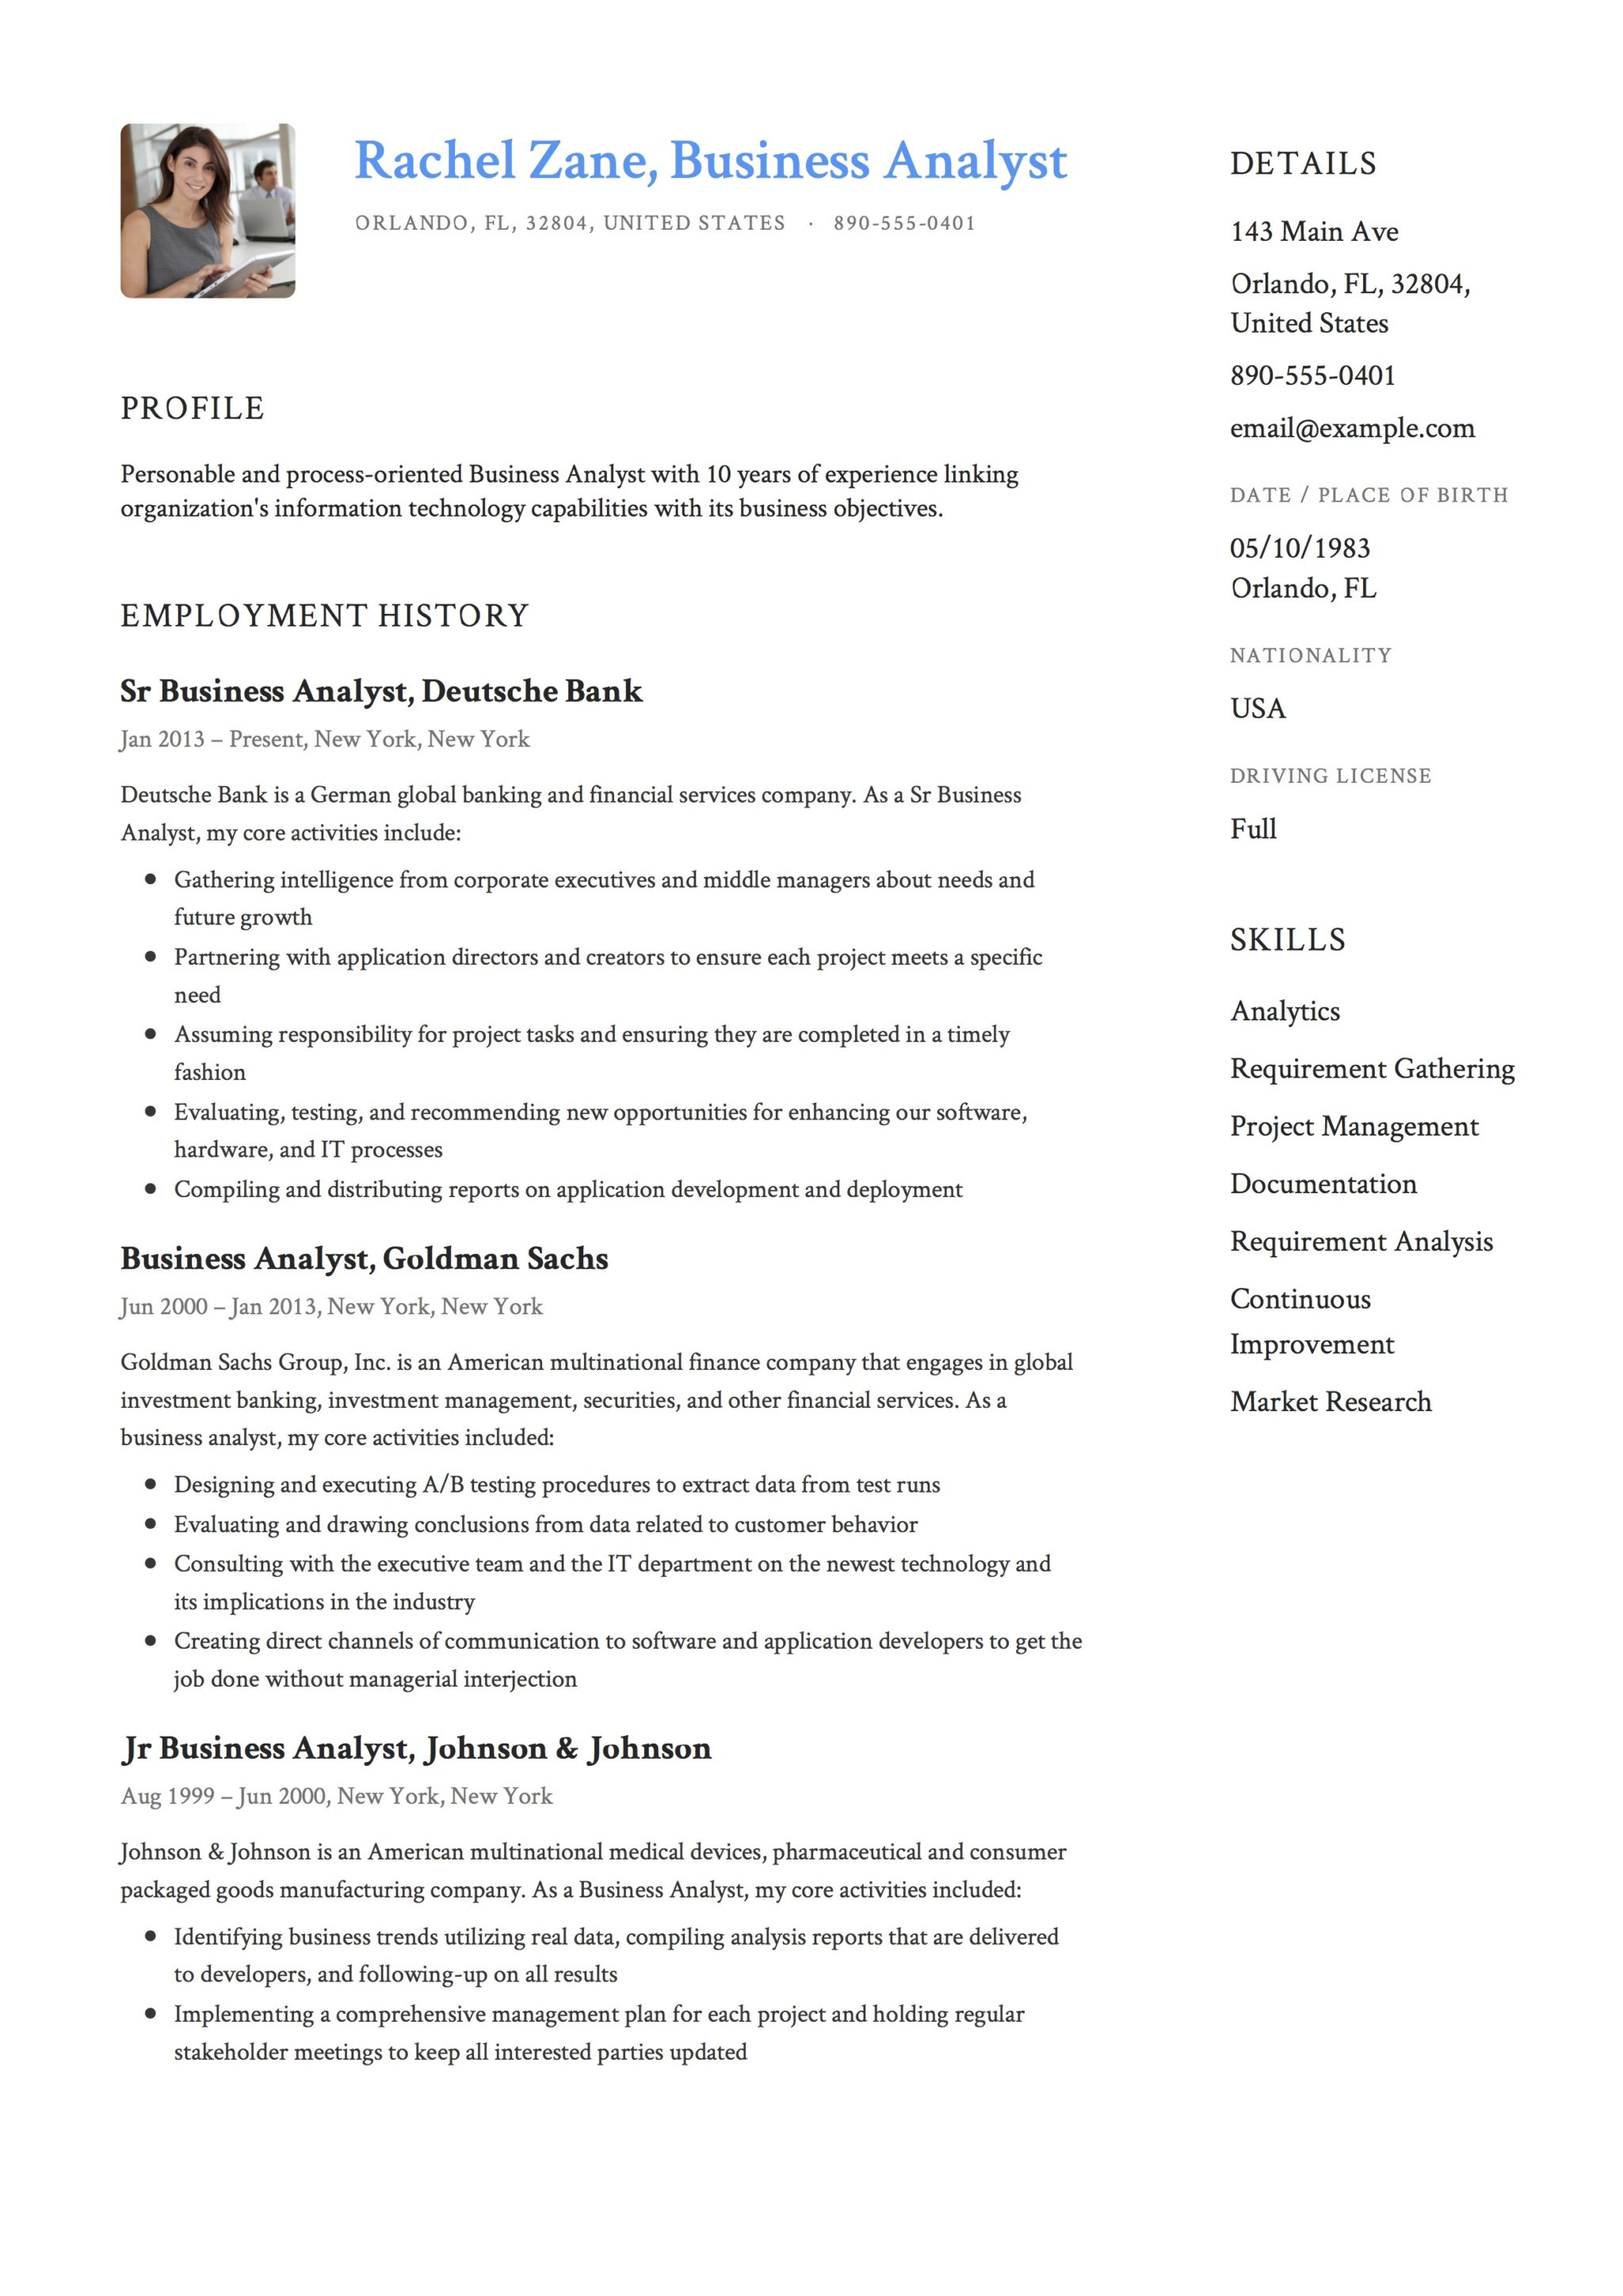 12 business analyst resume samples 2018 free downloads business analyst resume template friedricerecipe